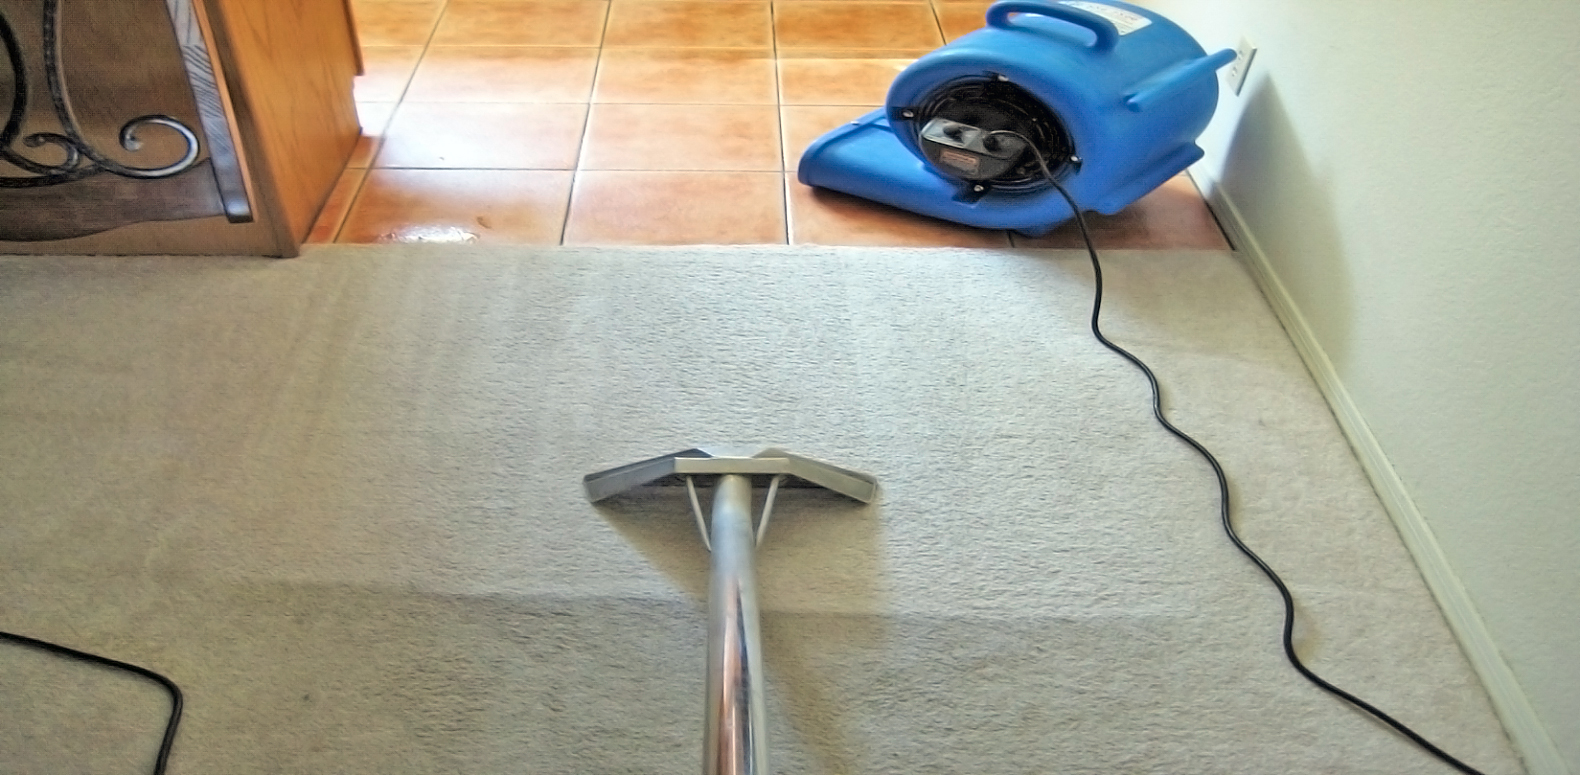 Carpet Cleaning Mount Irvine